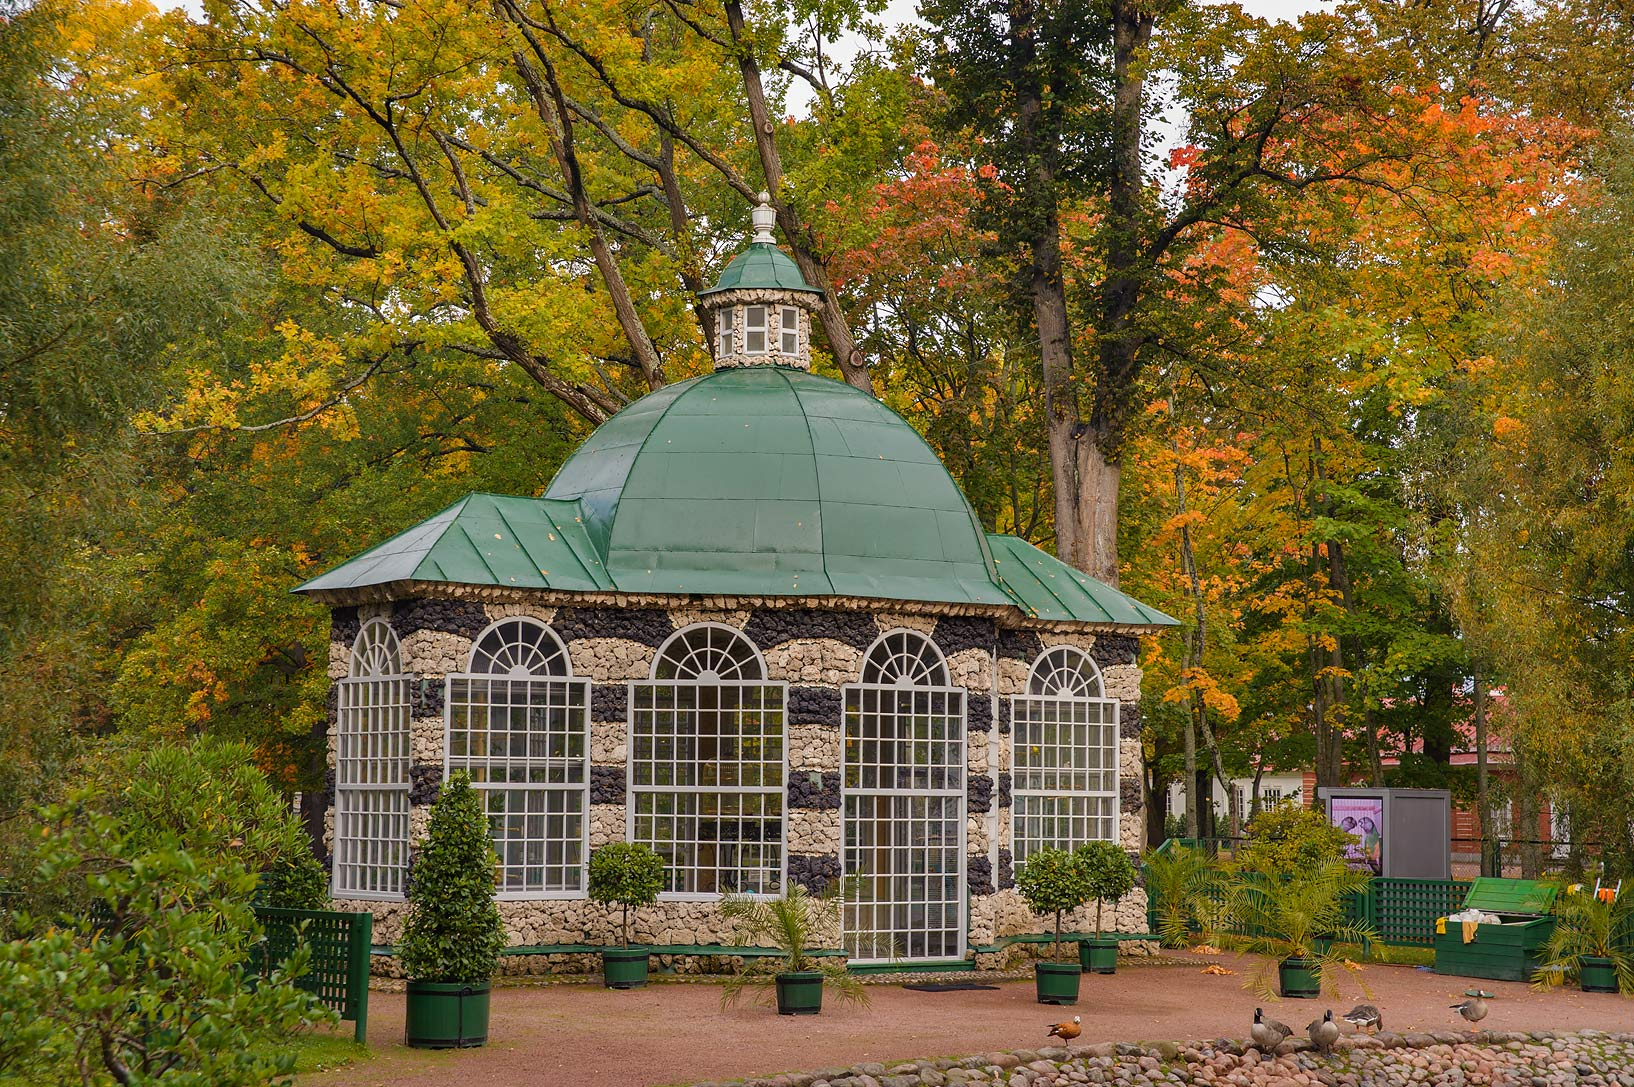 Pavilion Eastern Volyer in Lower Gardens...a suburb of St.Petersburg. Russia